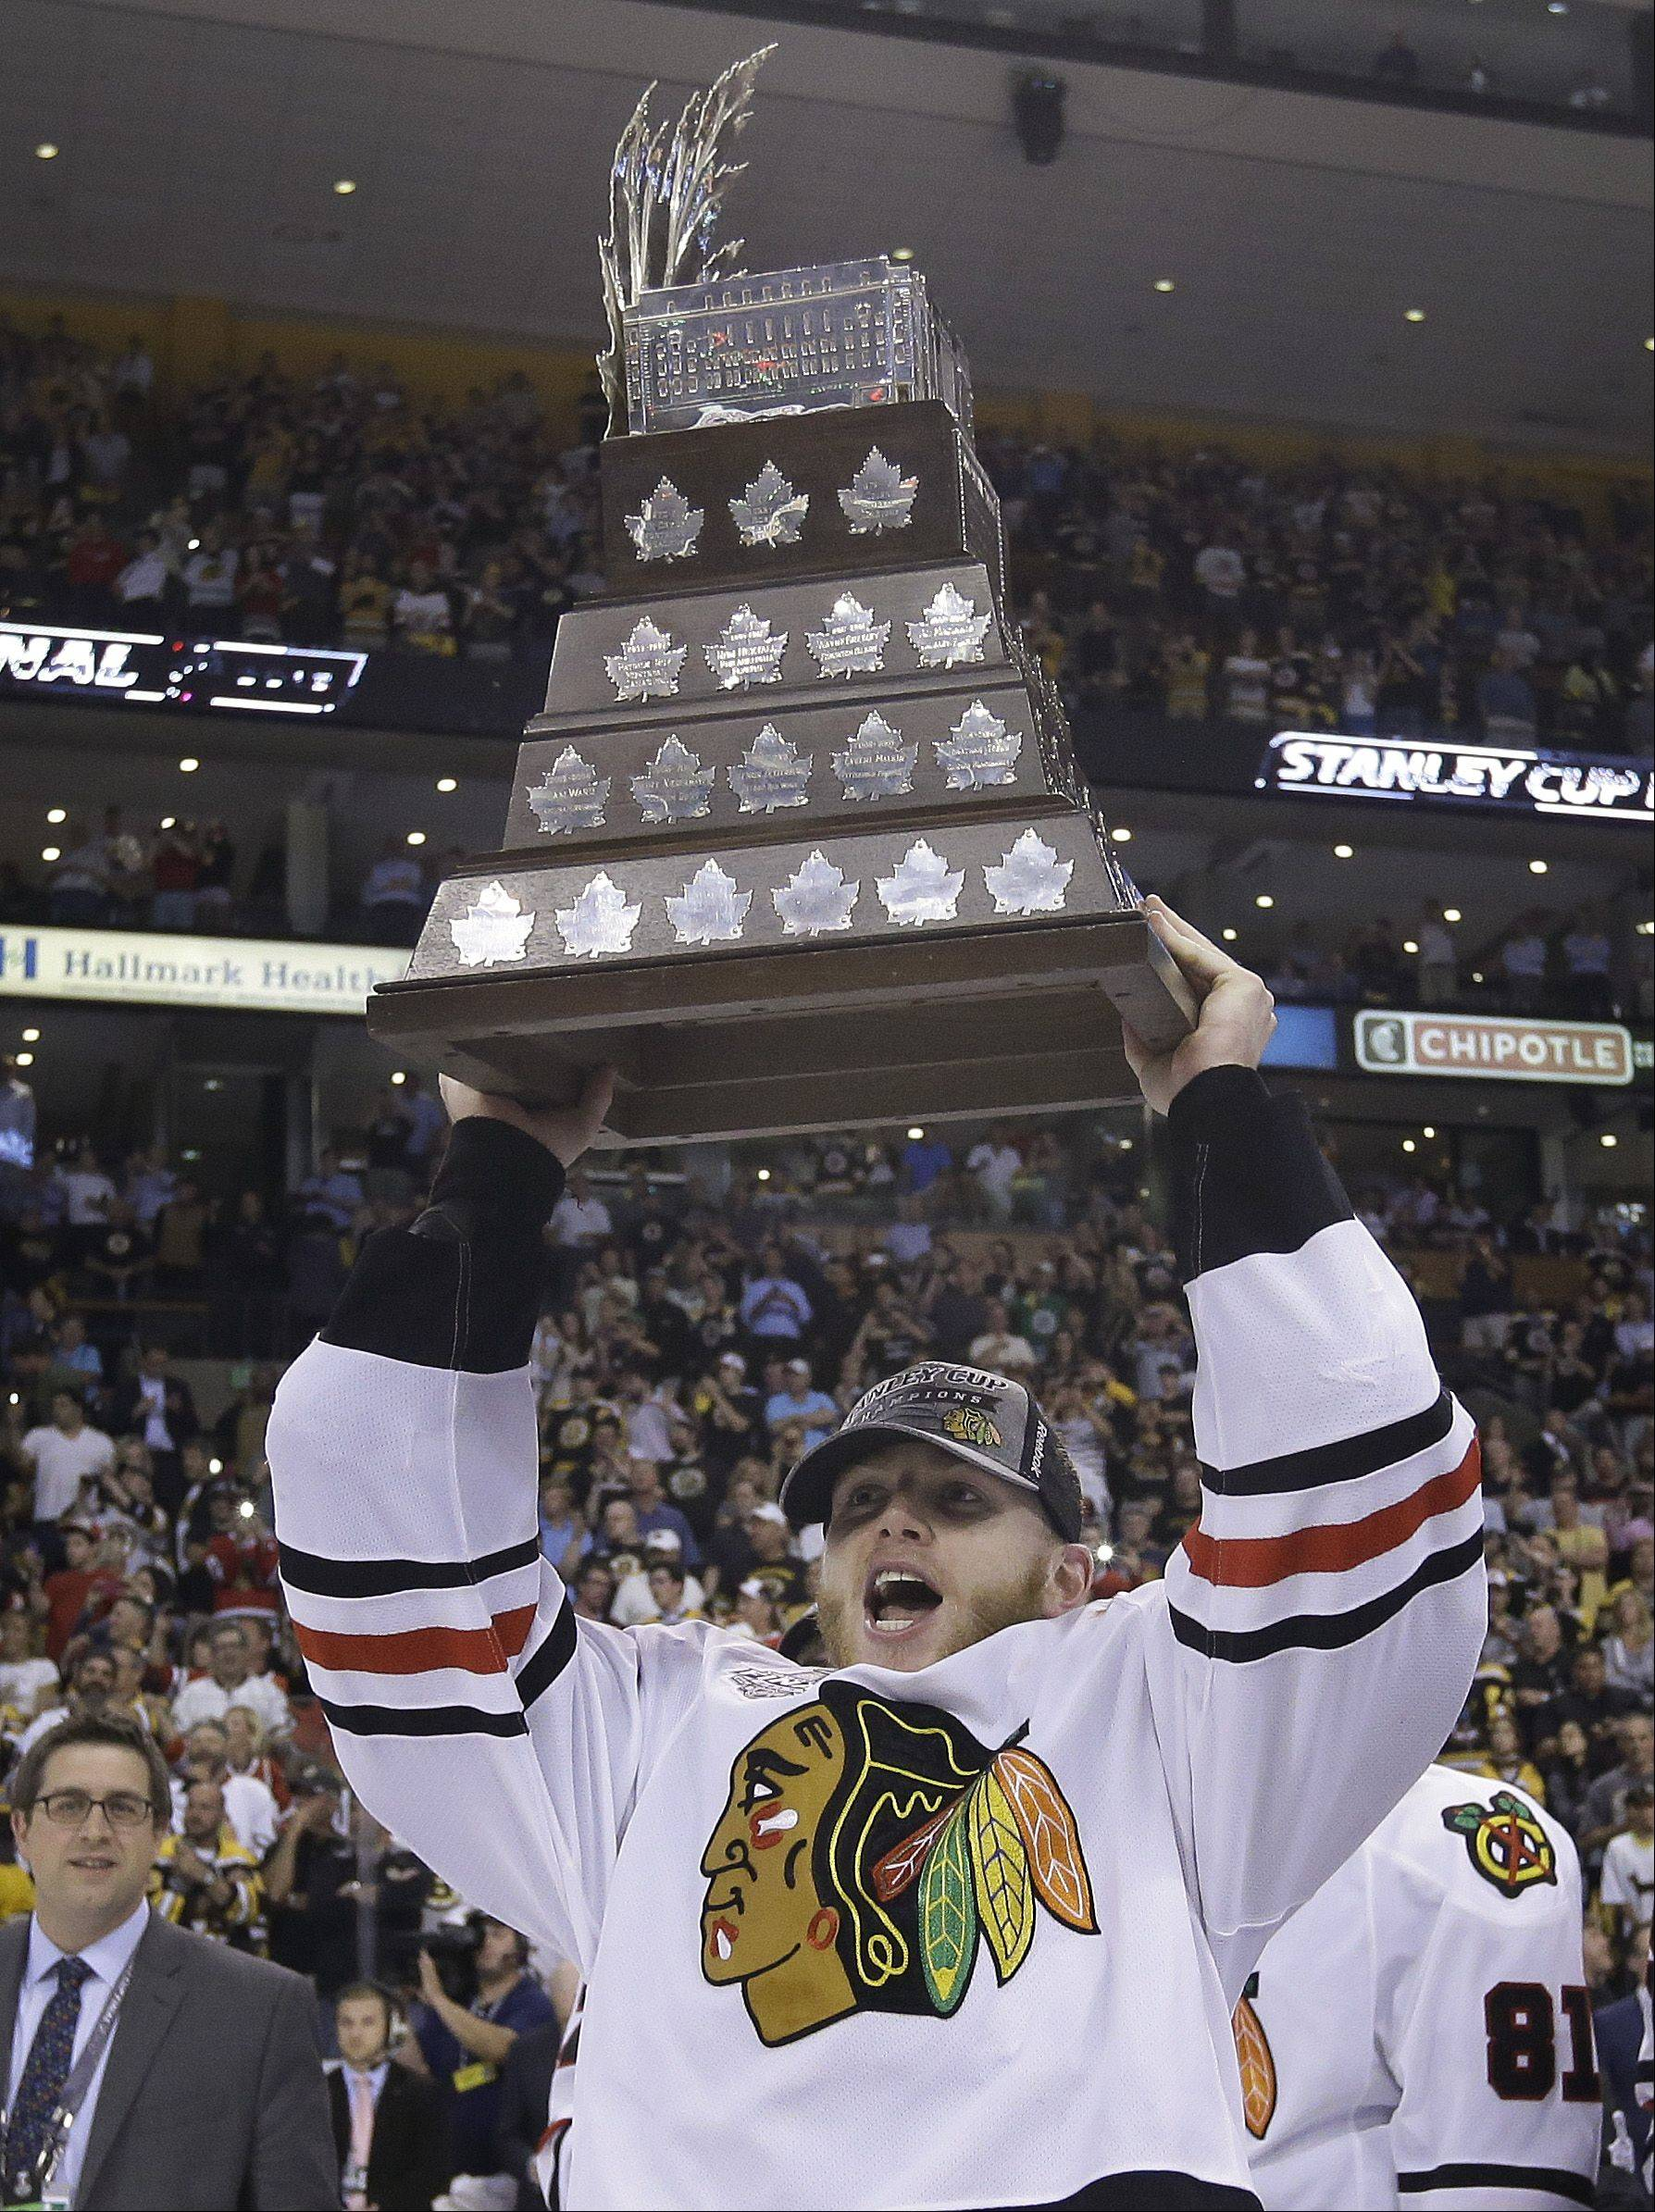 Blackhawks right wing Patrick Kane hoists the Conn Smythe trophy, awarded to the playoffs most valuable player, after the Blackhawks beat the Boston Bruins 3-2 in Game 6 of the Stanley Cup Finals.